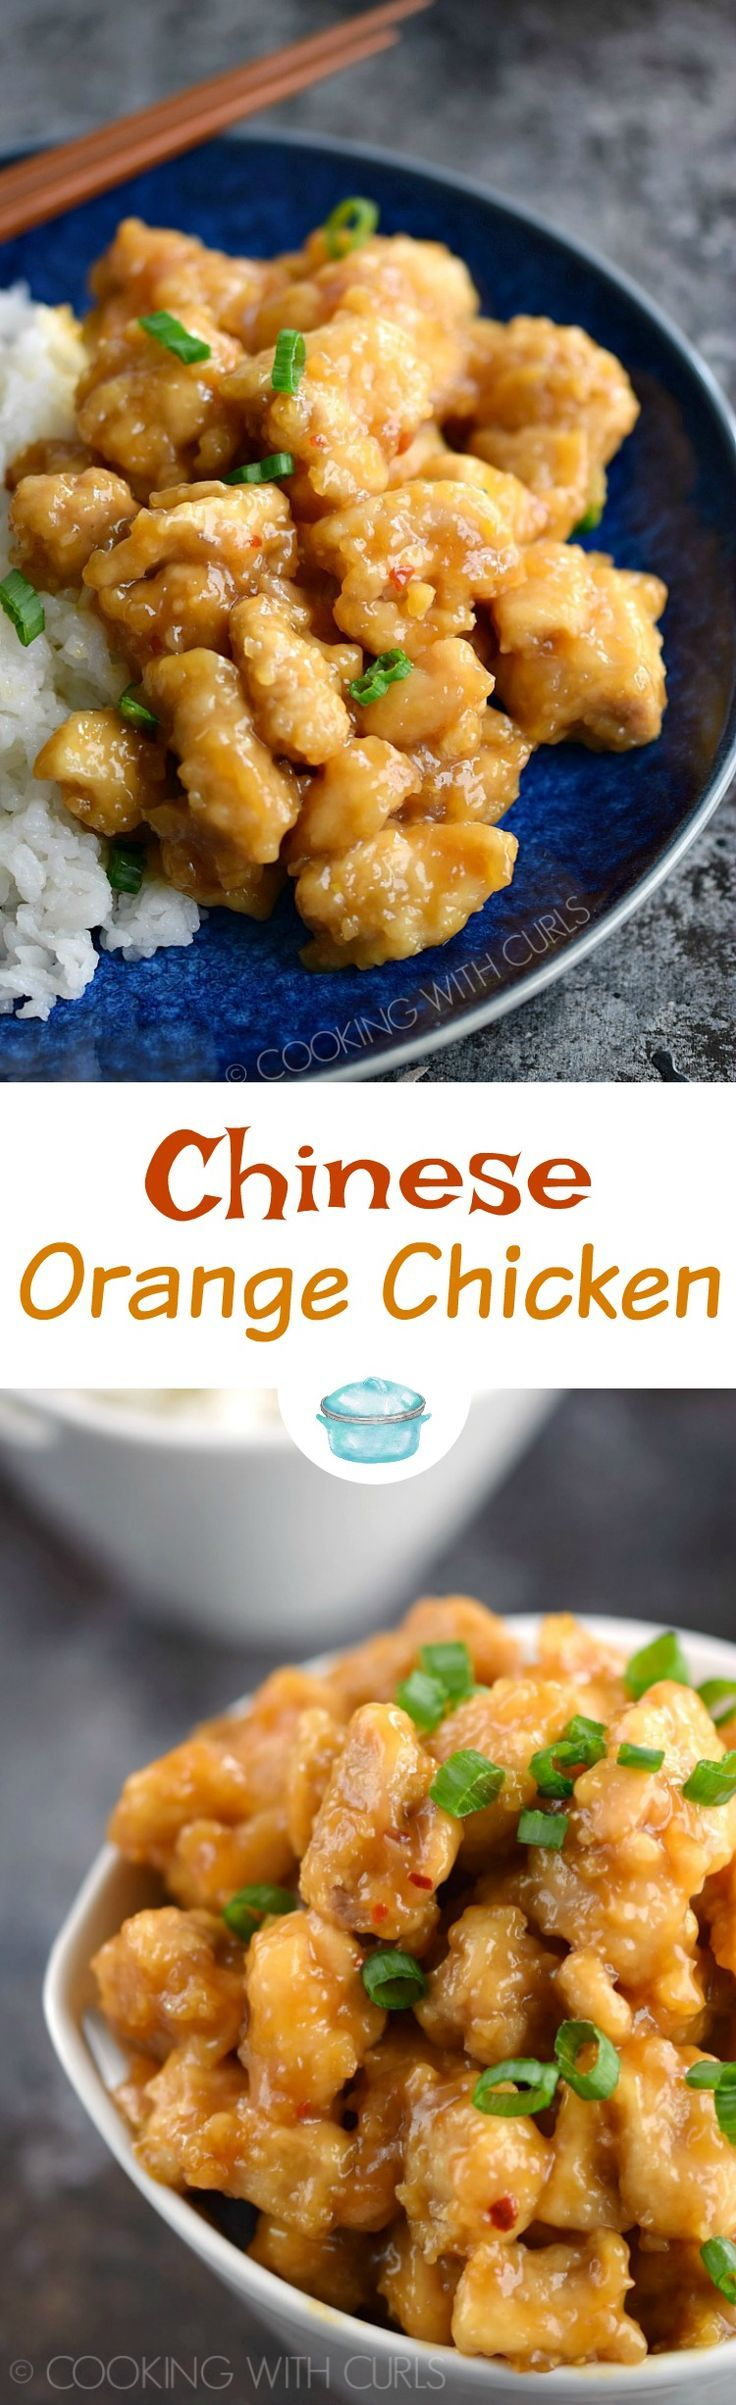 Impress your family with your mad skills and serve them Chinese Orange Chicken for dinner tonight! It's tastes better than take-out and it's healthier too!! #chinese #takeoutfakeout #orange #skipthetakeout #glutenfree via @cookwithcurls